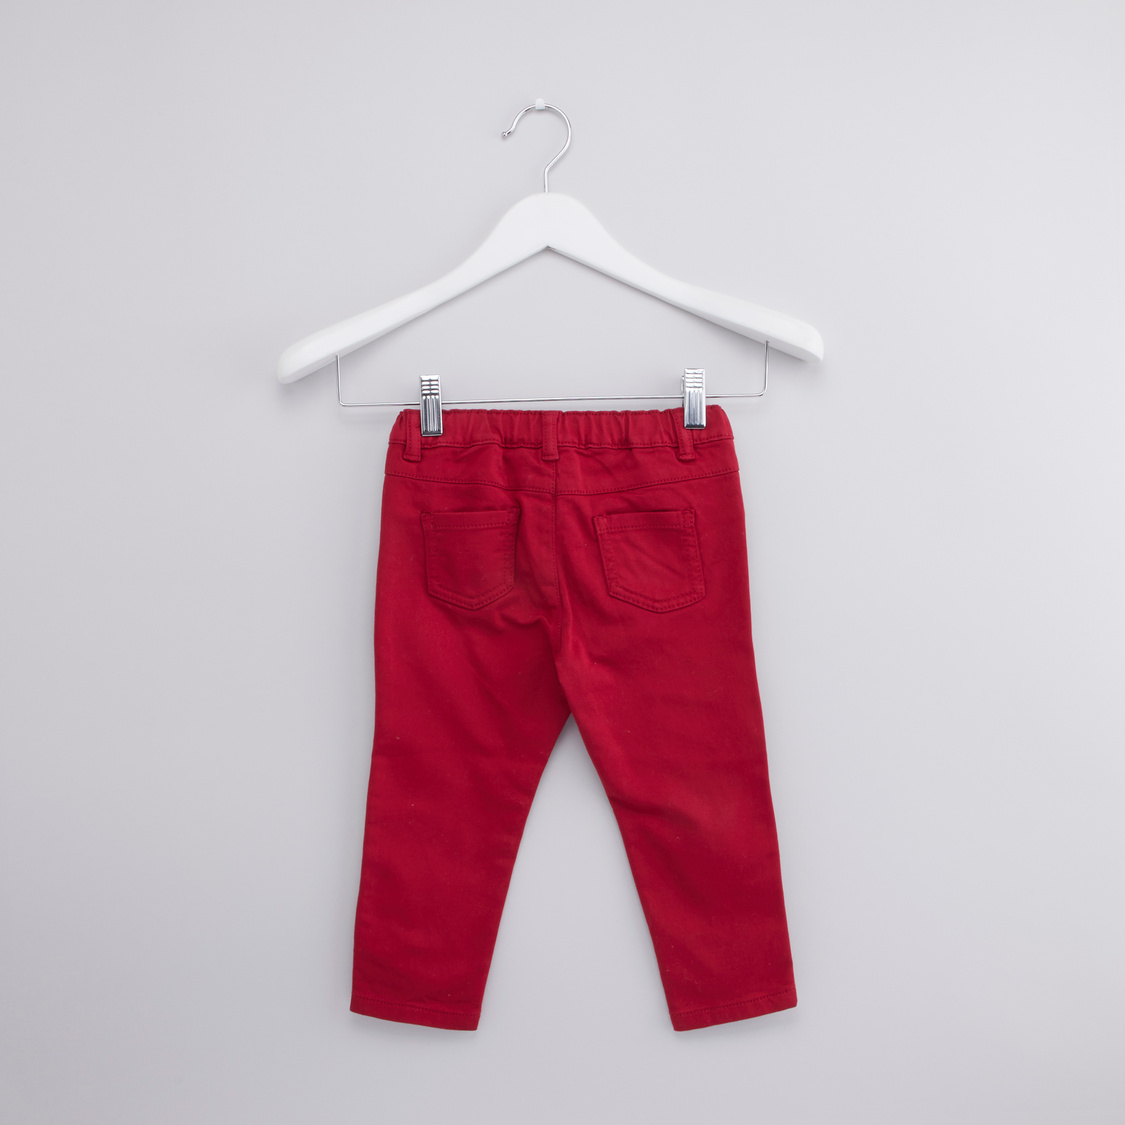 Full Length Plain Trouser with Pocket Detail and Belt Loops